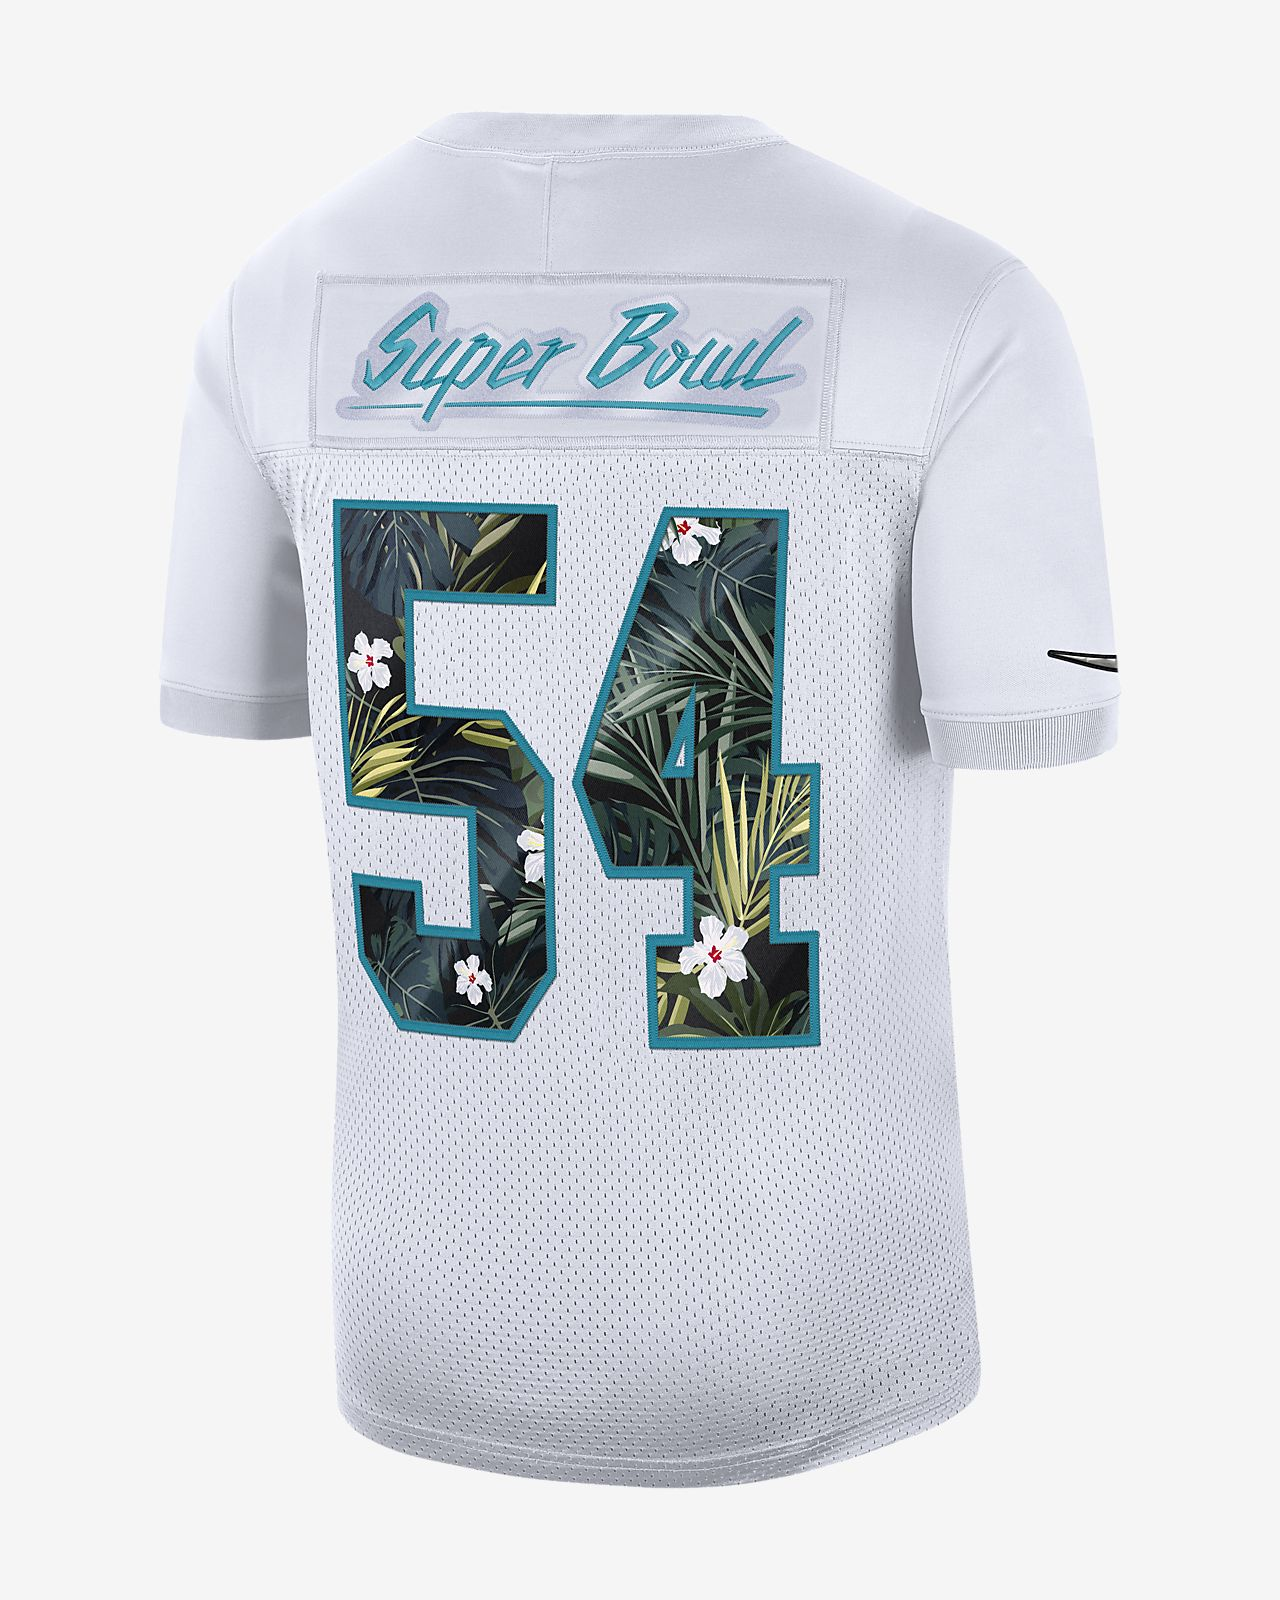 Gear Up For The Super Bowl With A Limited edition Nike